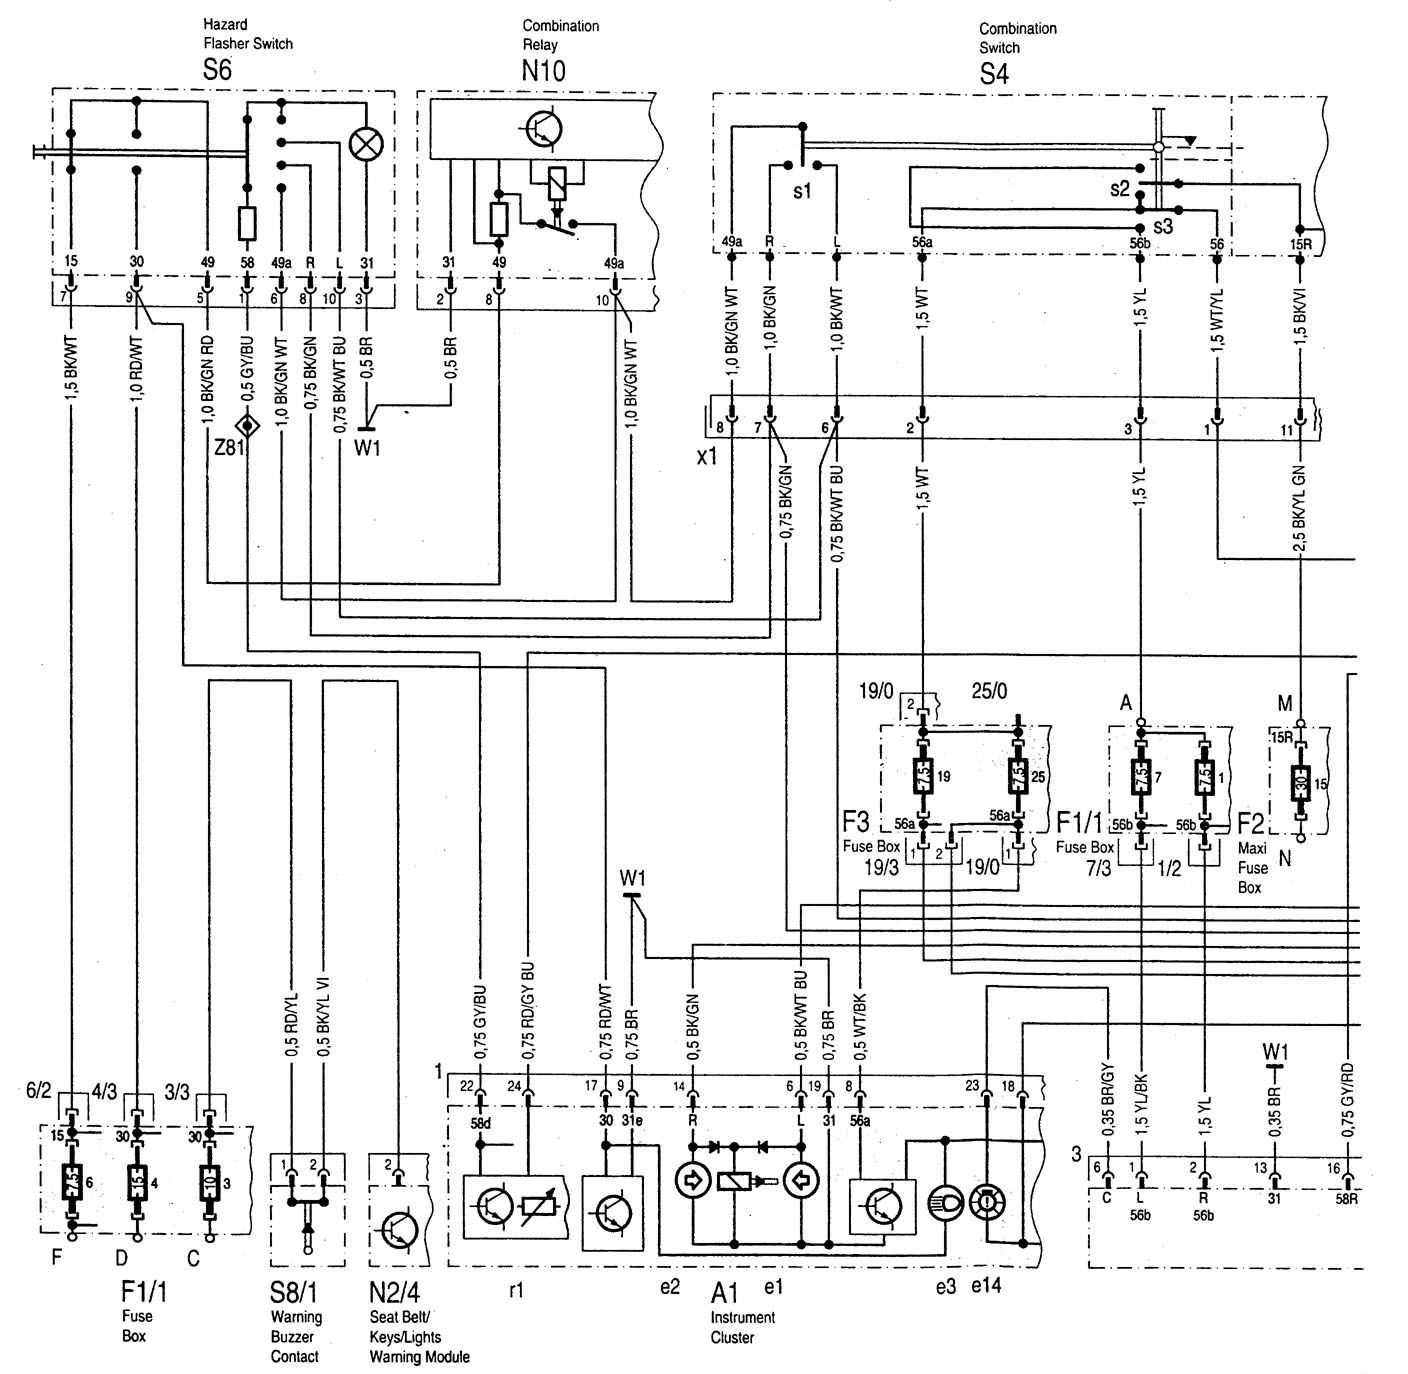 Mercedes Benz C280 1994 1997 Wiring Diagrams Interior Diagram C220 Lighting Part 1